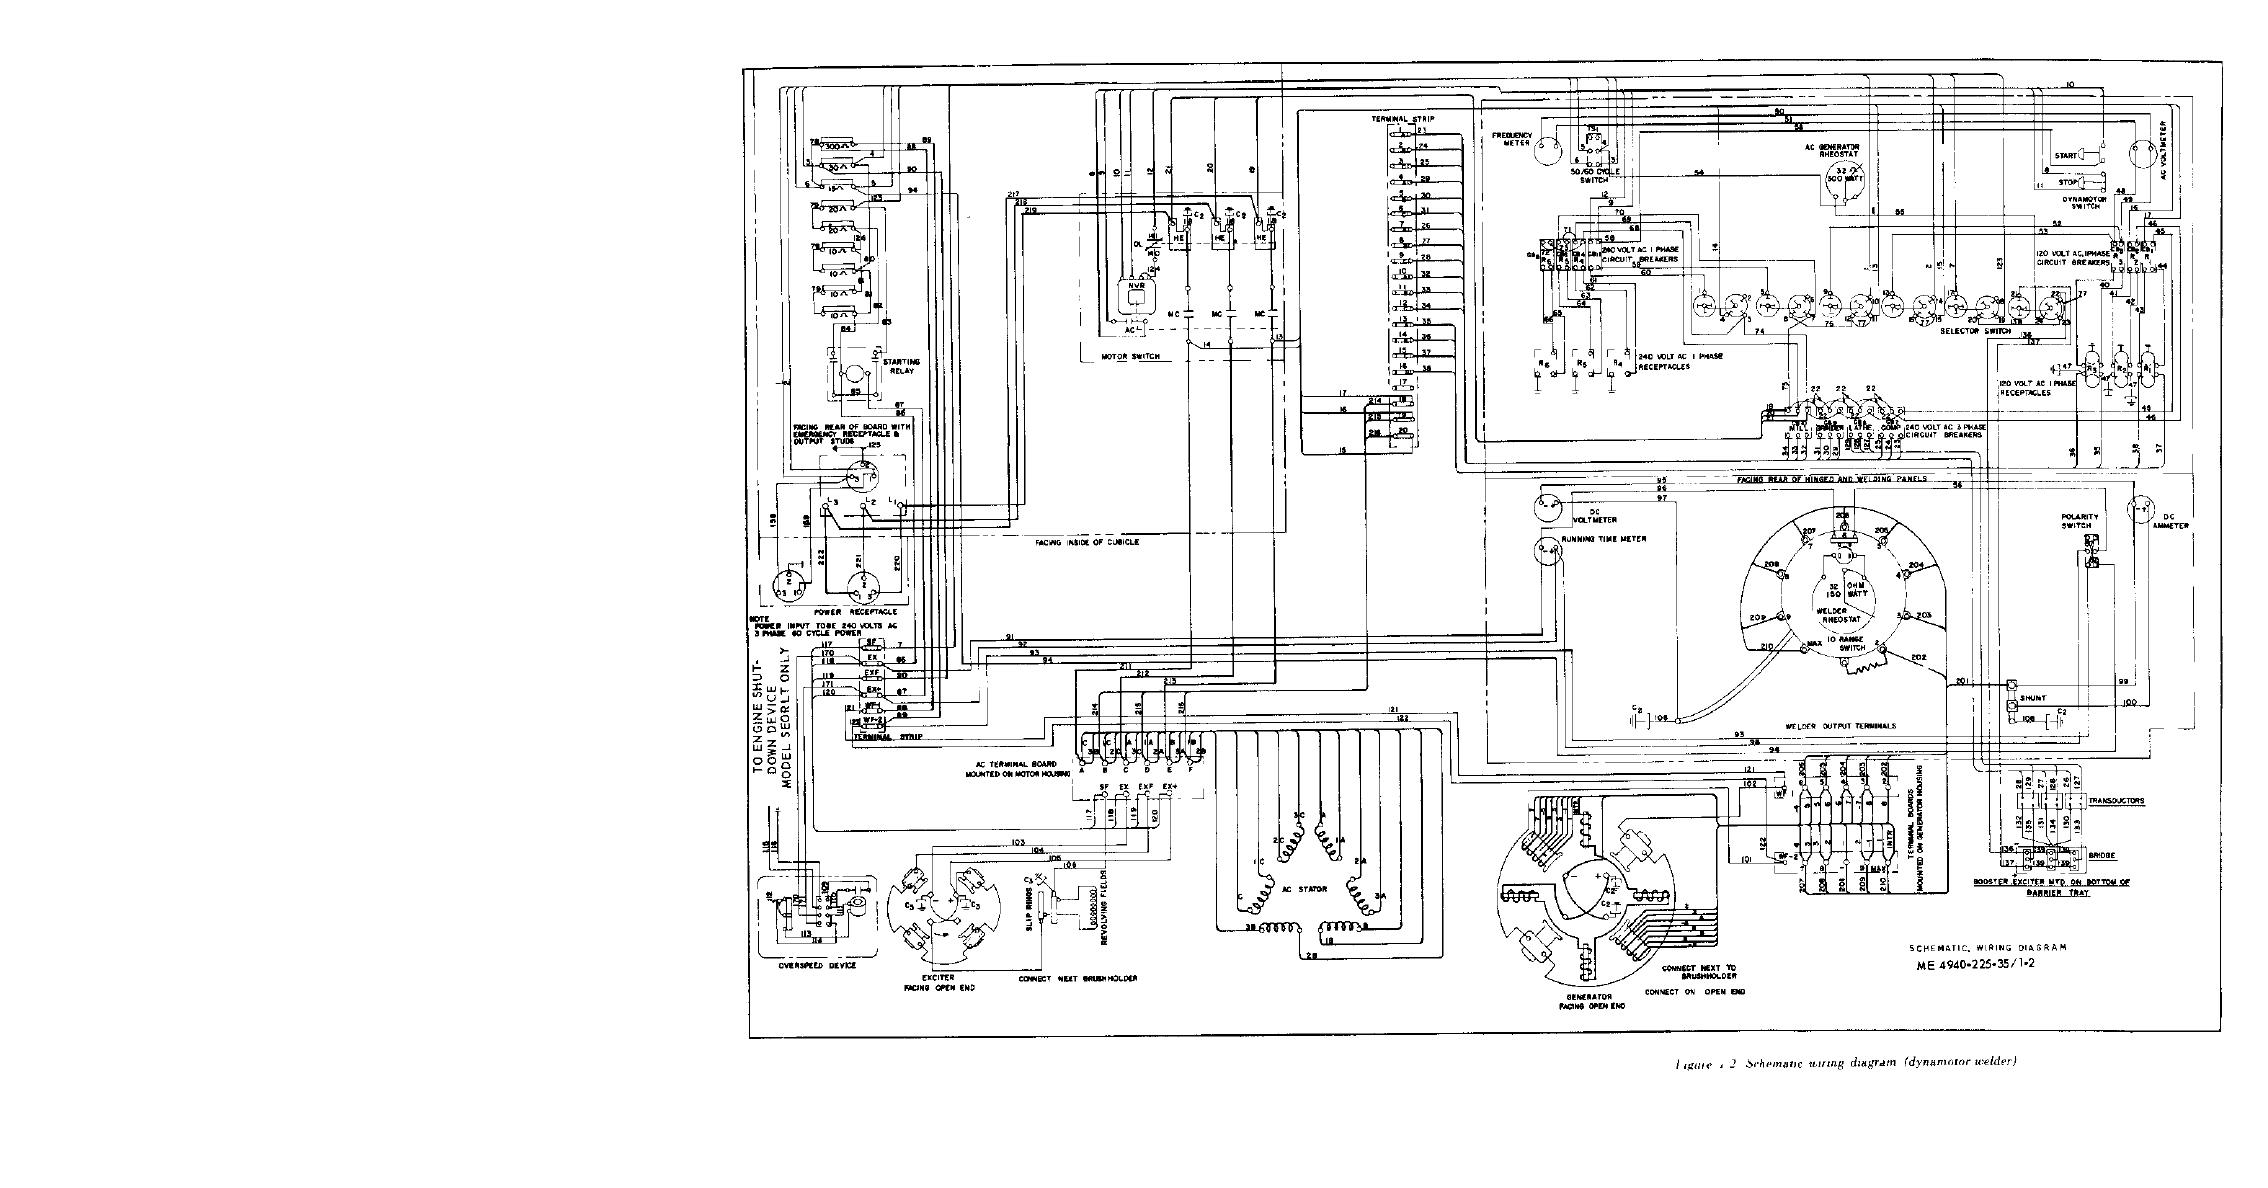 Figure 1 2 Schematic Wiring Diagram Dynamotor Welder